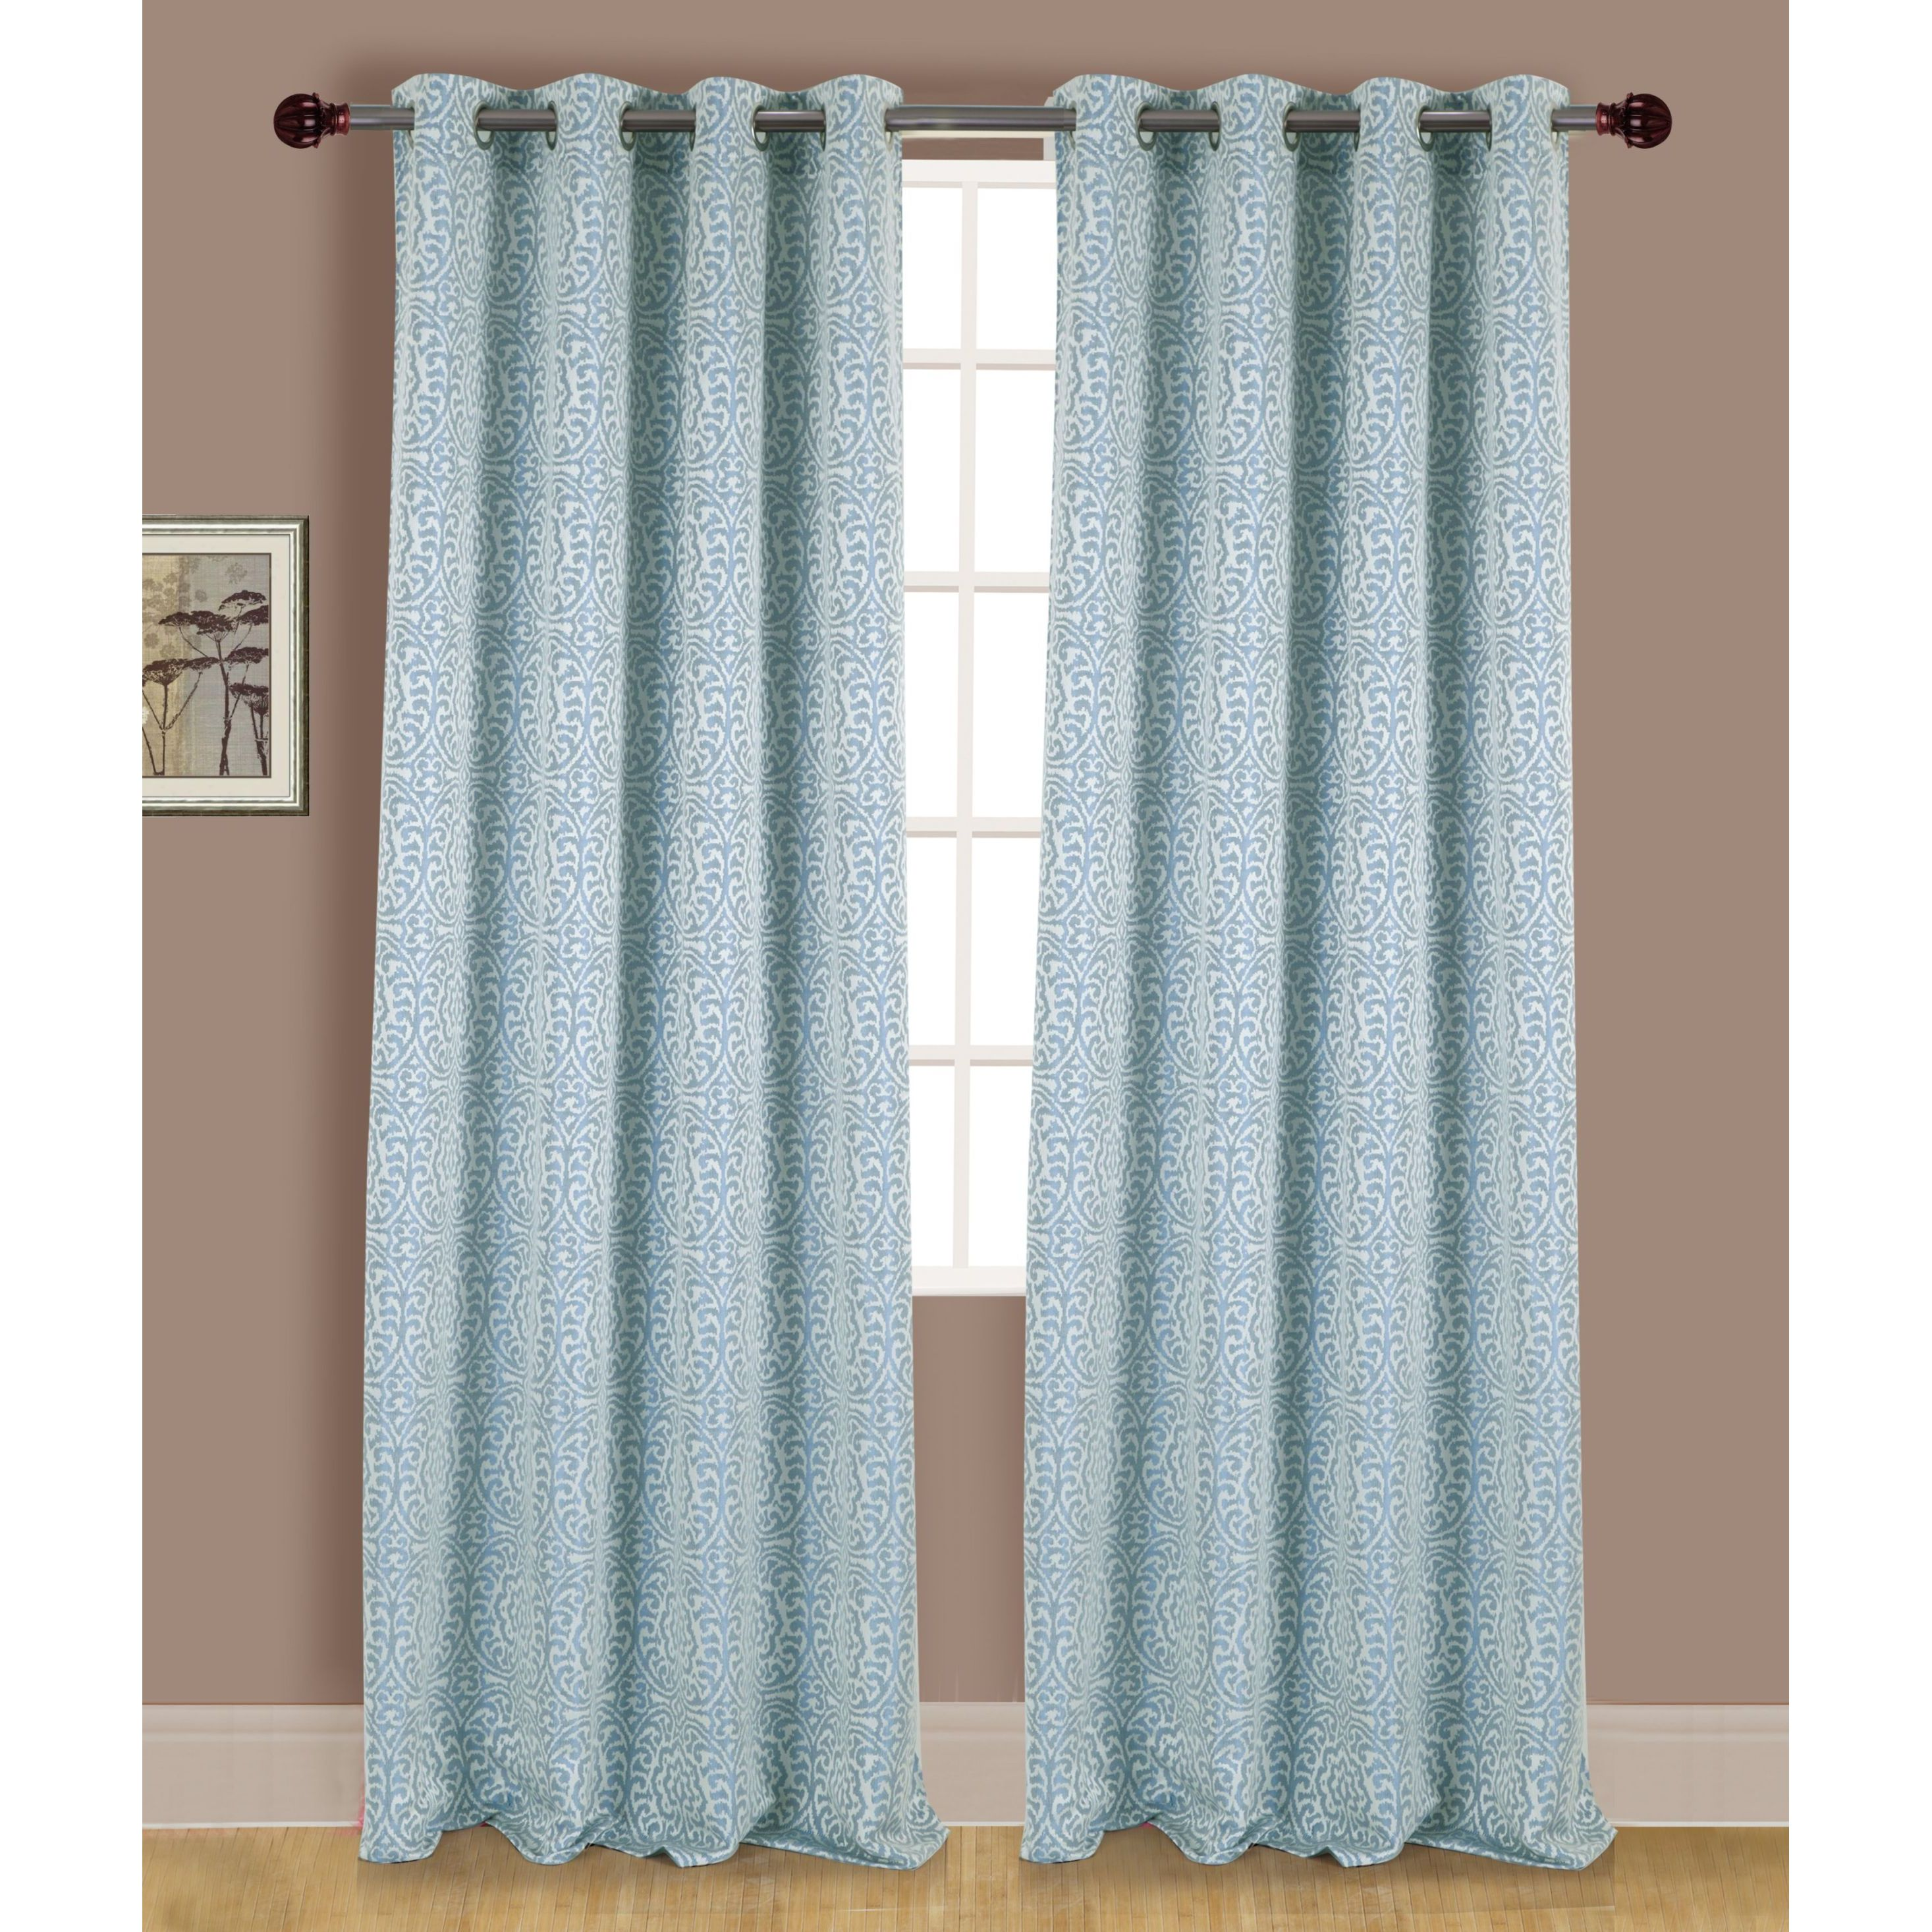 top ready chambray slx made styleline ring dollclique daytona blackout curtains ideas denim curtain source express eyelet com earth thermal